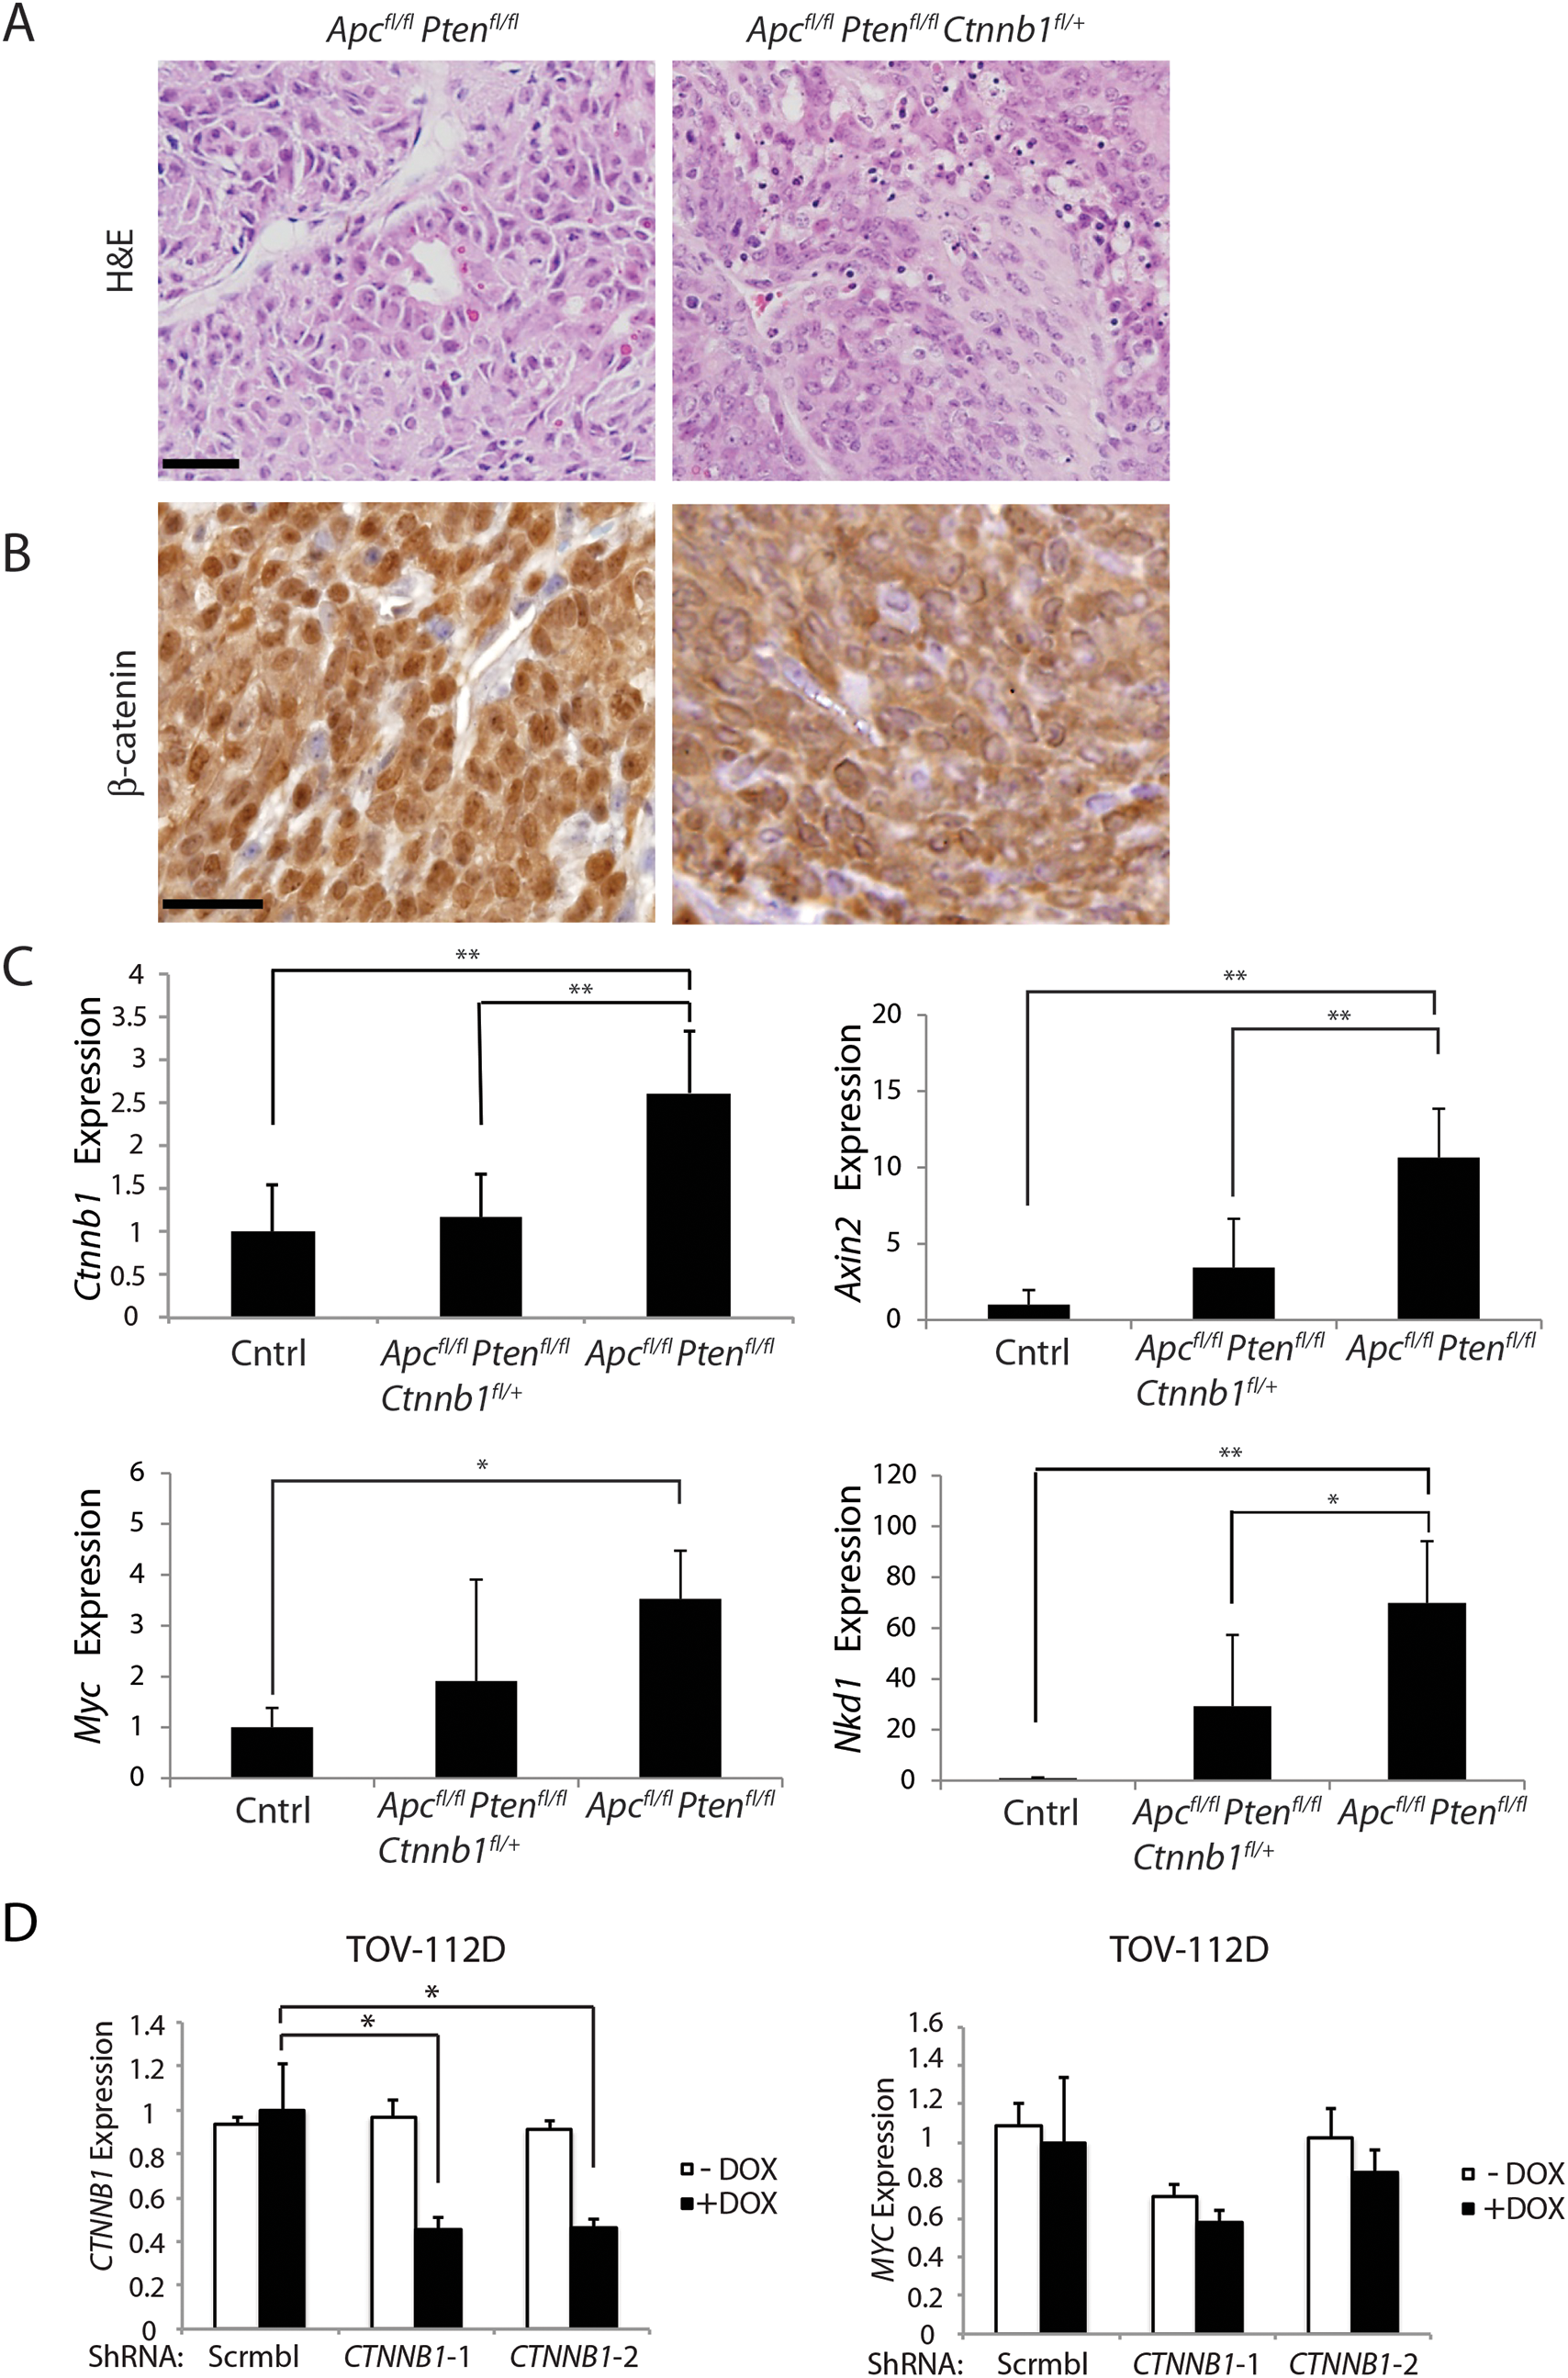 Heterozygous <i>Ctnnb1</i> inactivation does not prevent mouse ovarian endometrioid adenocarcinoma (OEA) development and the reduction in <i>Ctnnb1 dosage or CTNNB1</i> transcripts shows differential effects on selected β-catenin/TCF target genes.